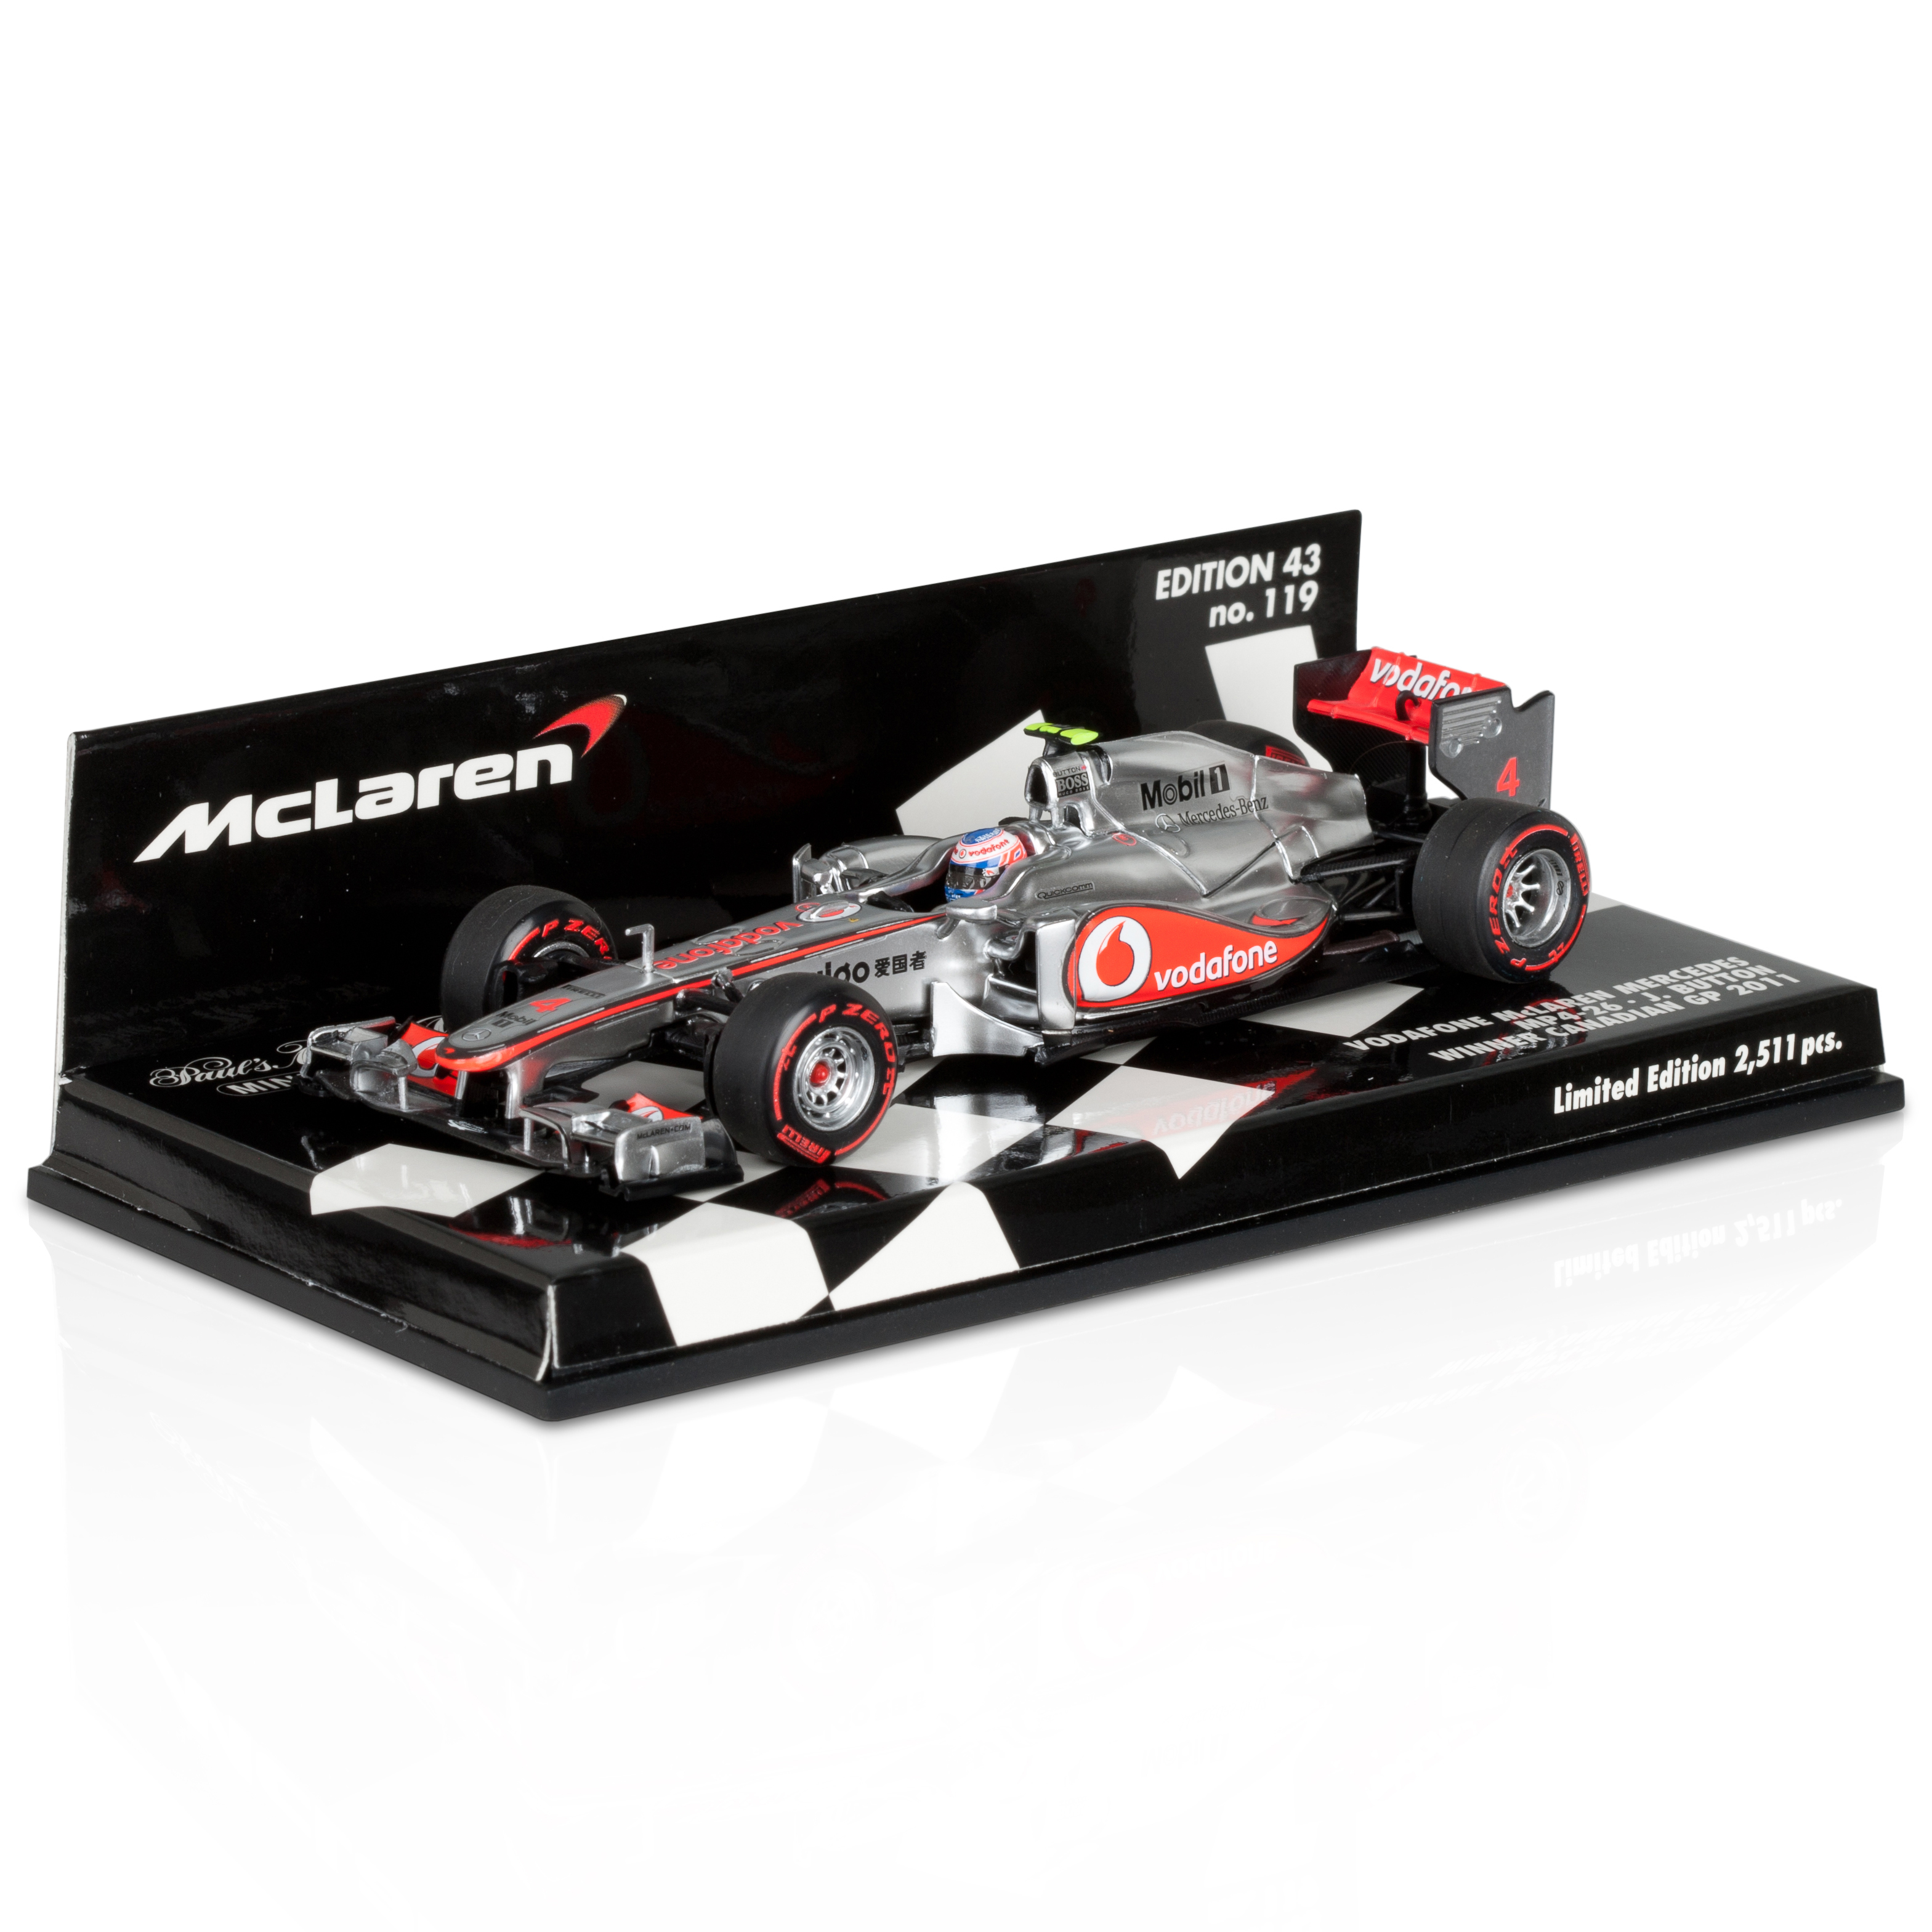 Vodafone McLaren Mercedes MP4-26 Jenson Button Canada GP Winner 2011 - 1:43 Scale